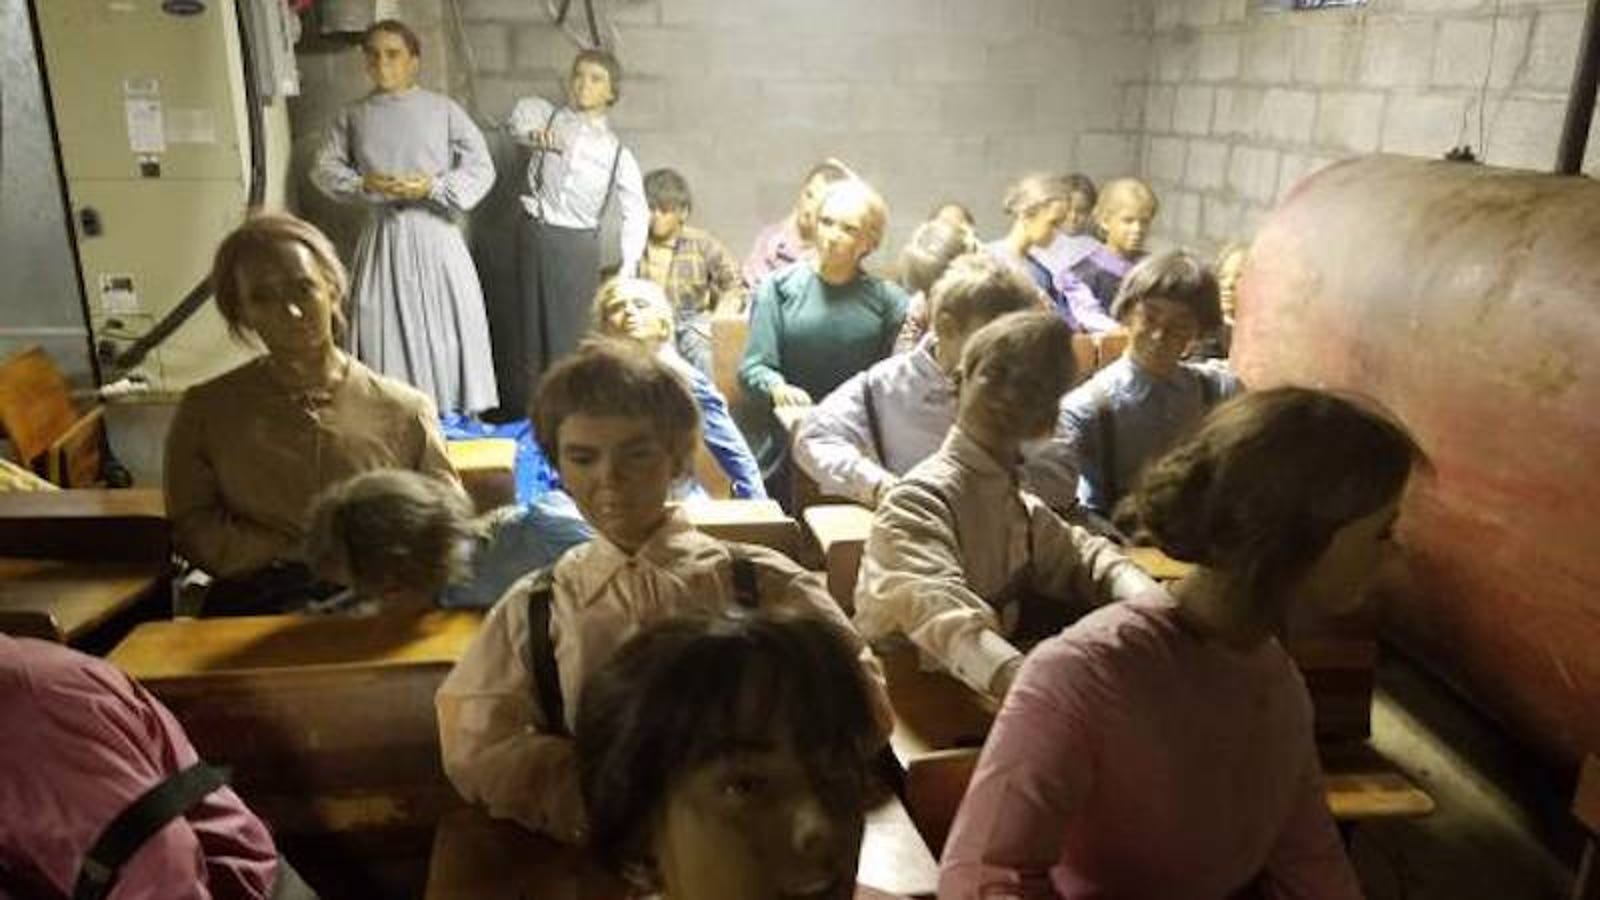 Craigslist Com Philadelphia >> You Can Buy These Absurdly Creepy Wax Amish Children for Just $300 (Each)